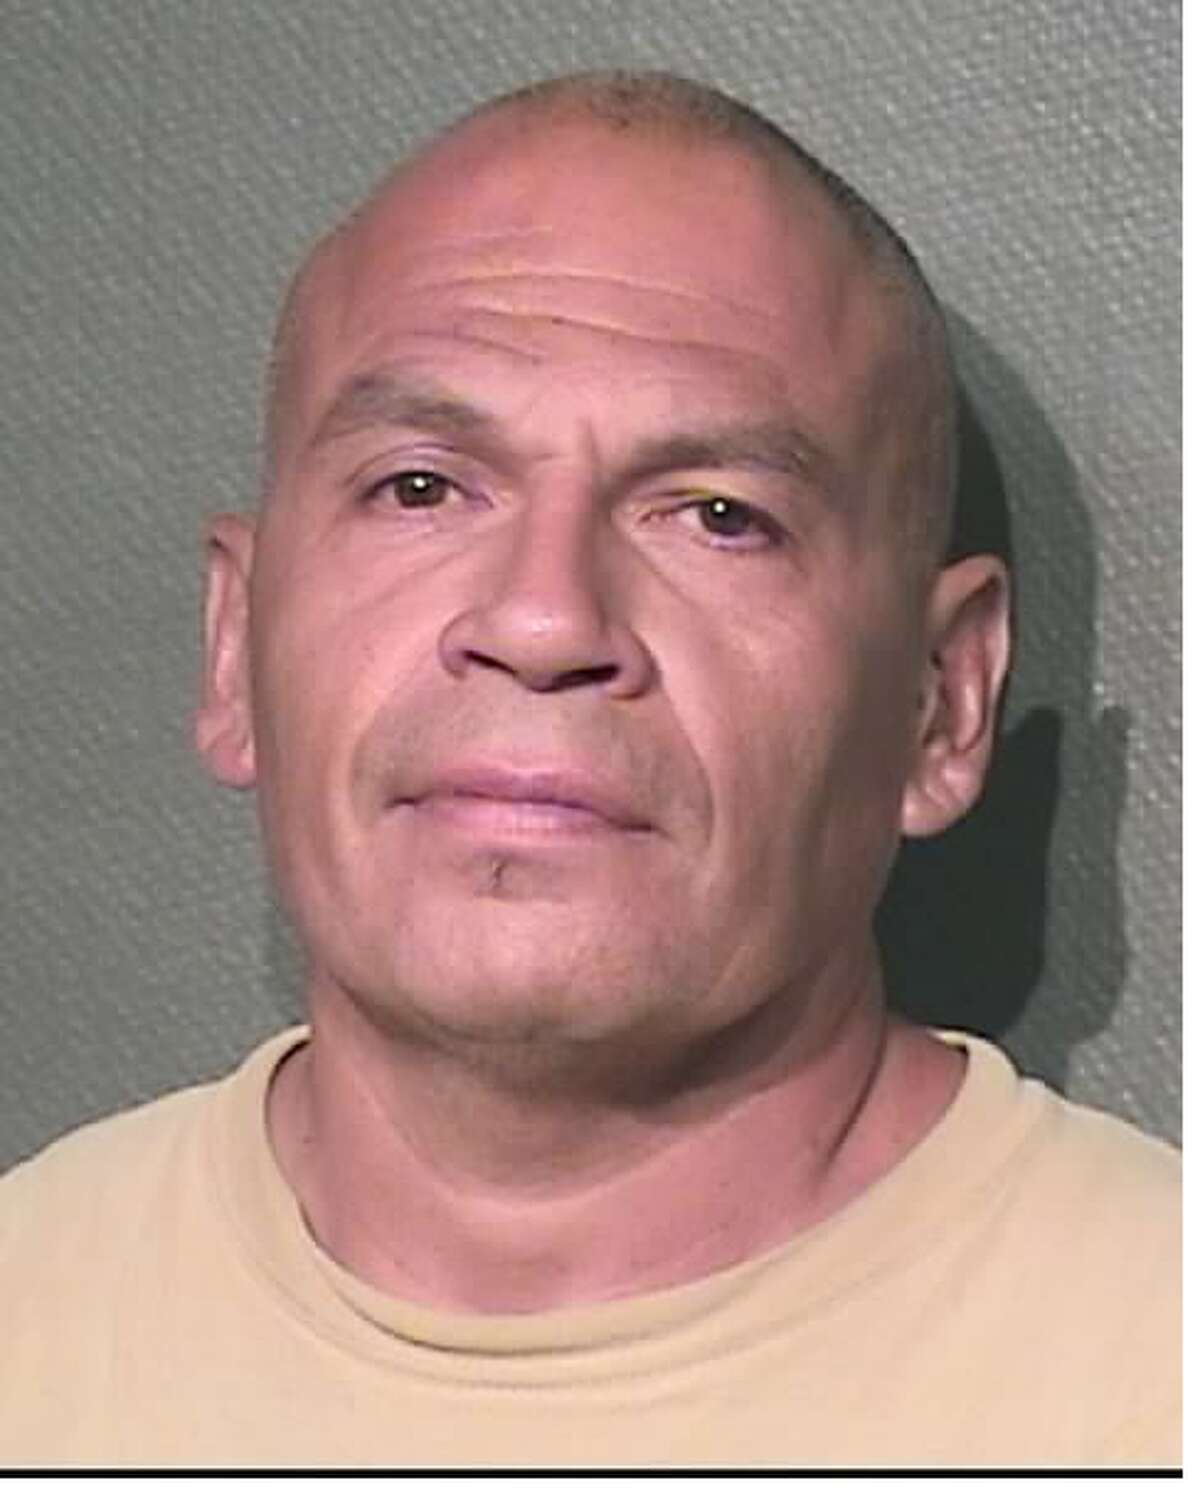 Esteban Gonzalez was arrested in October 2017 on a charge of intoxicated manslaughter.